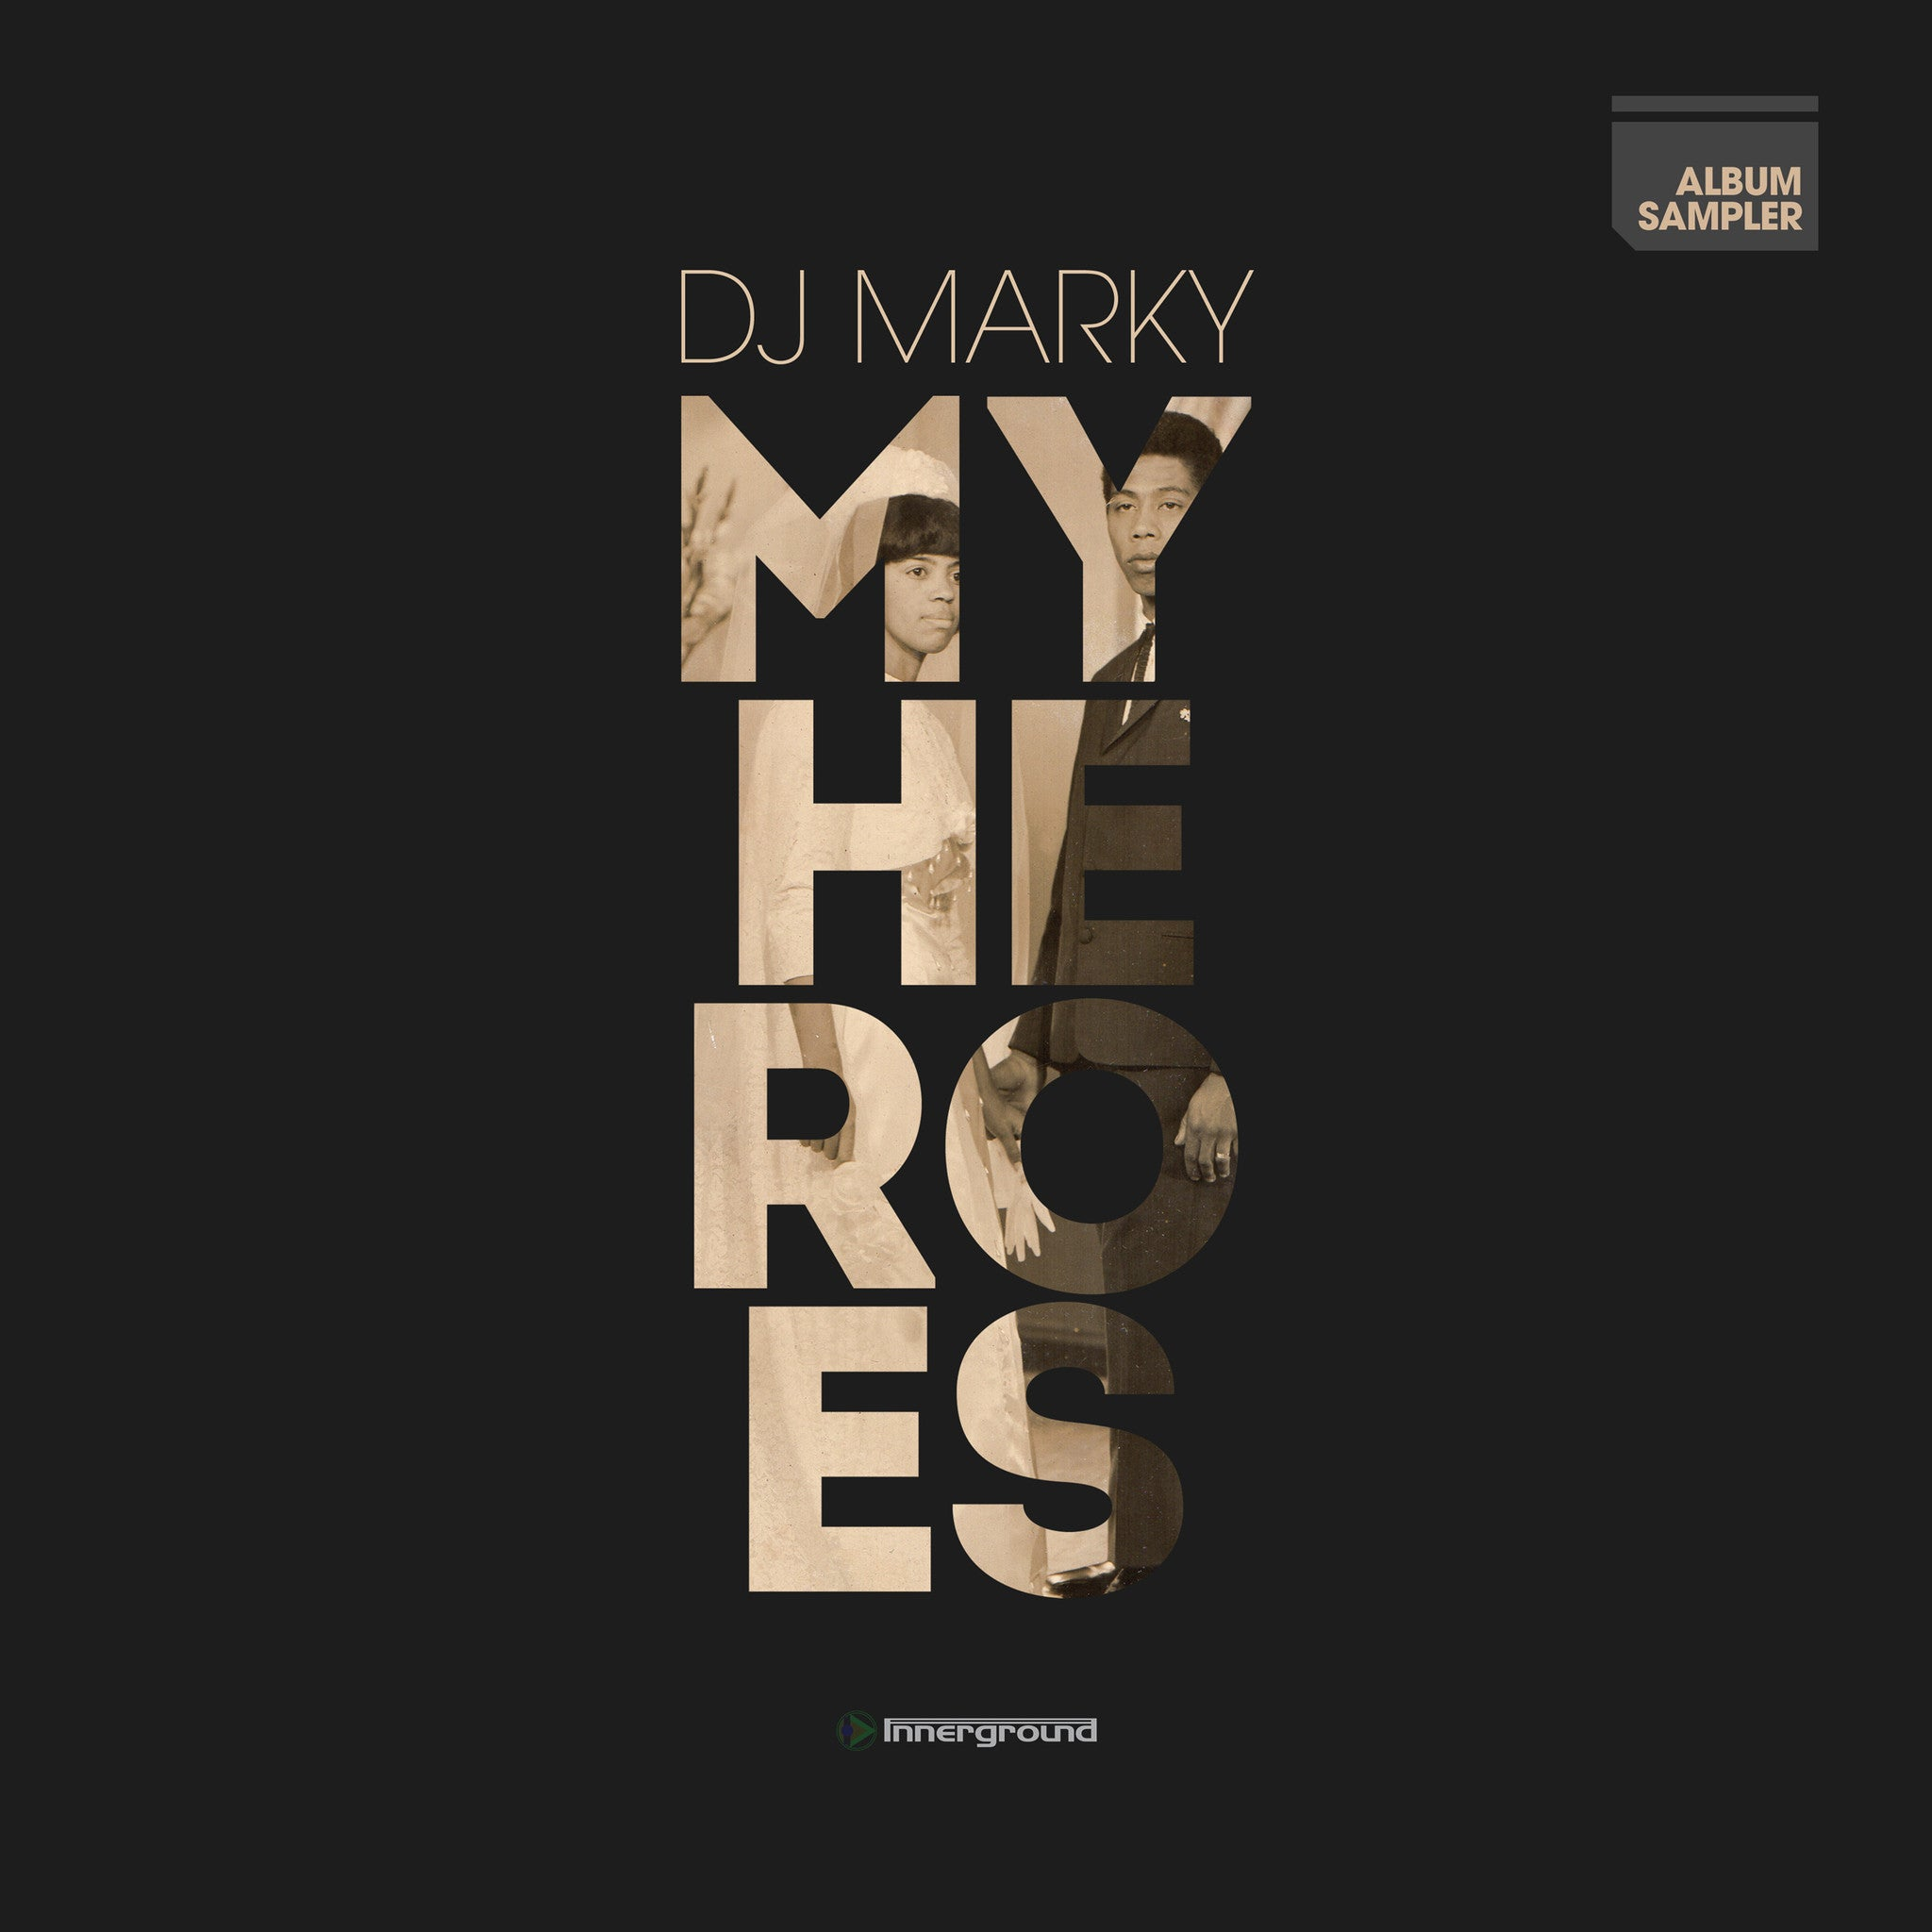 DJ Marky - My Heroes Album Sampler - Unearthed Sounds